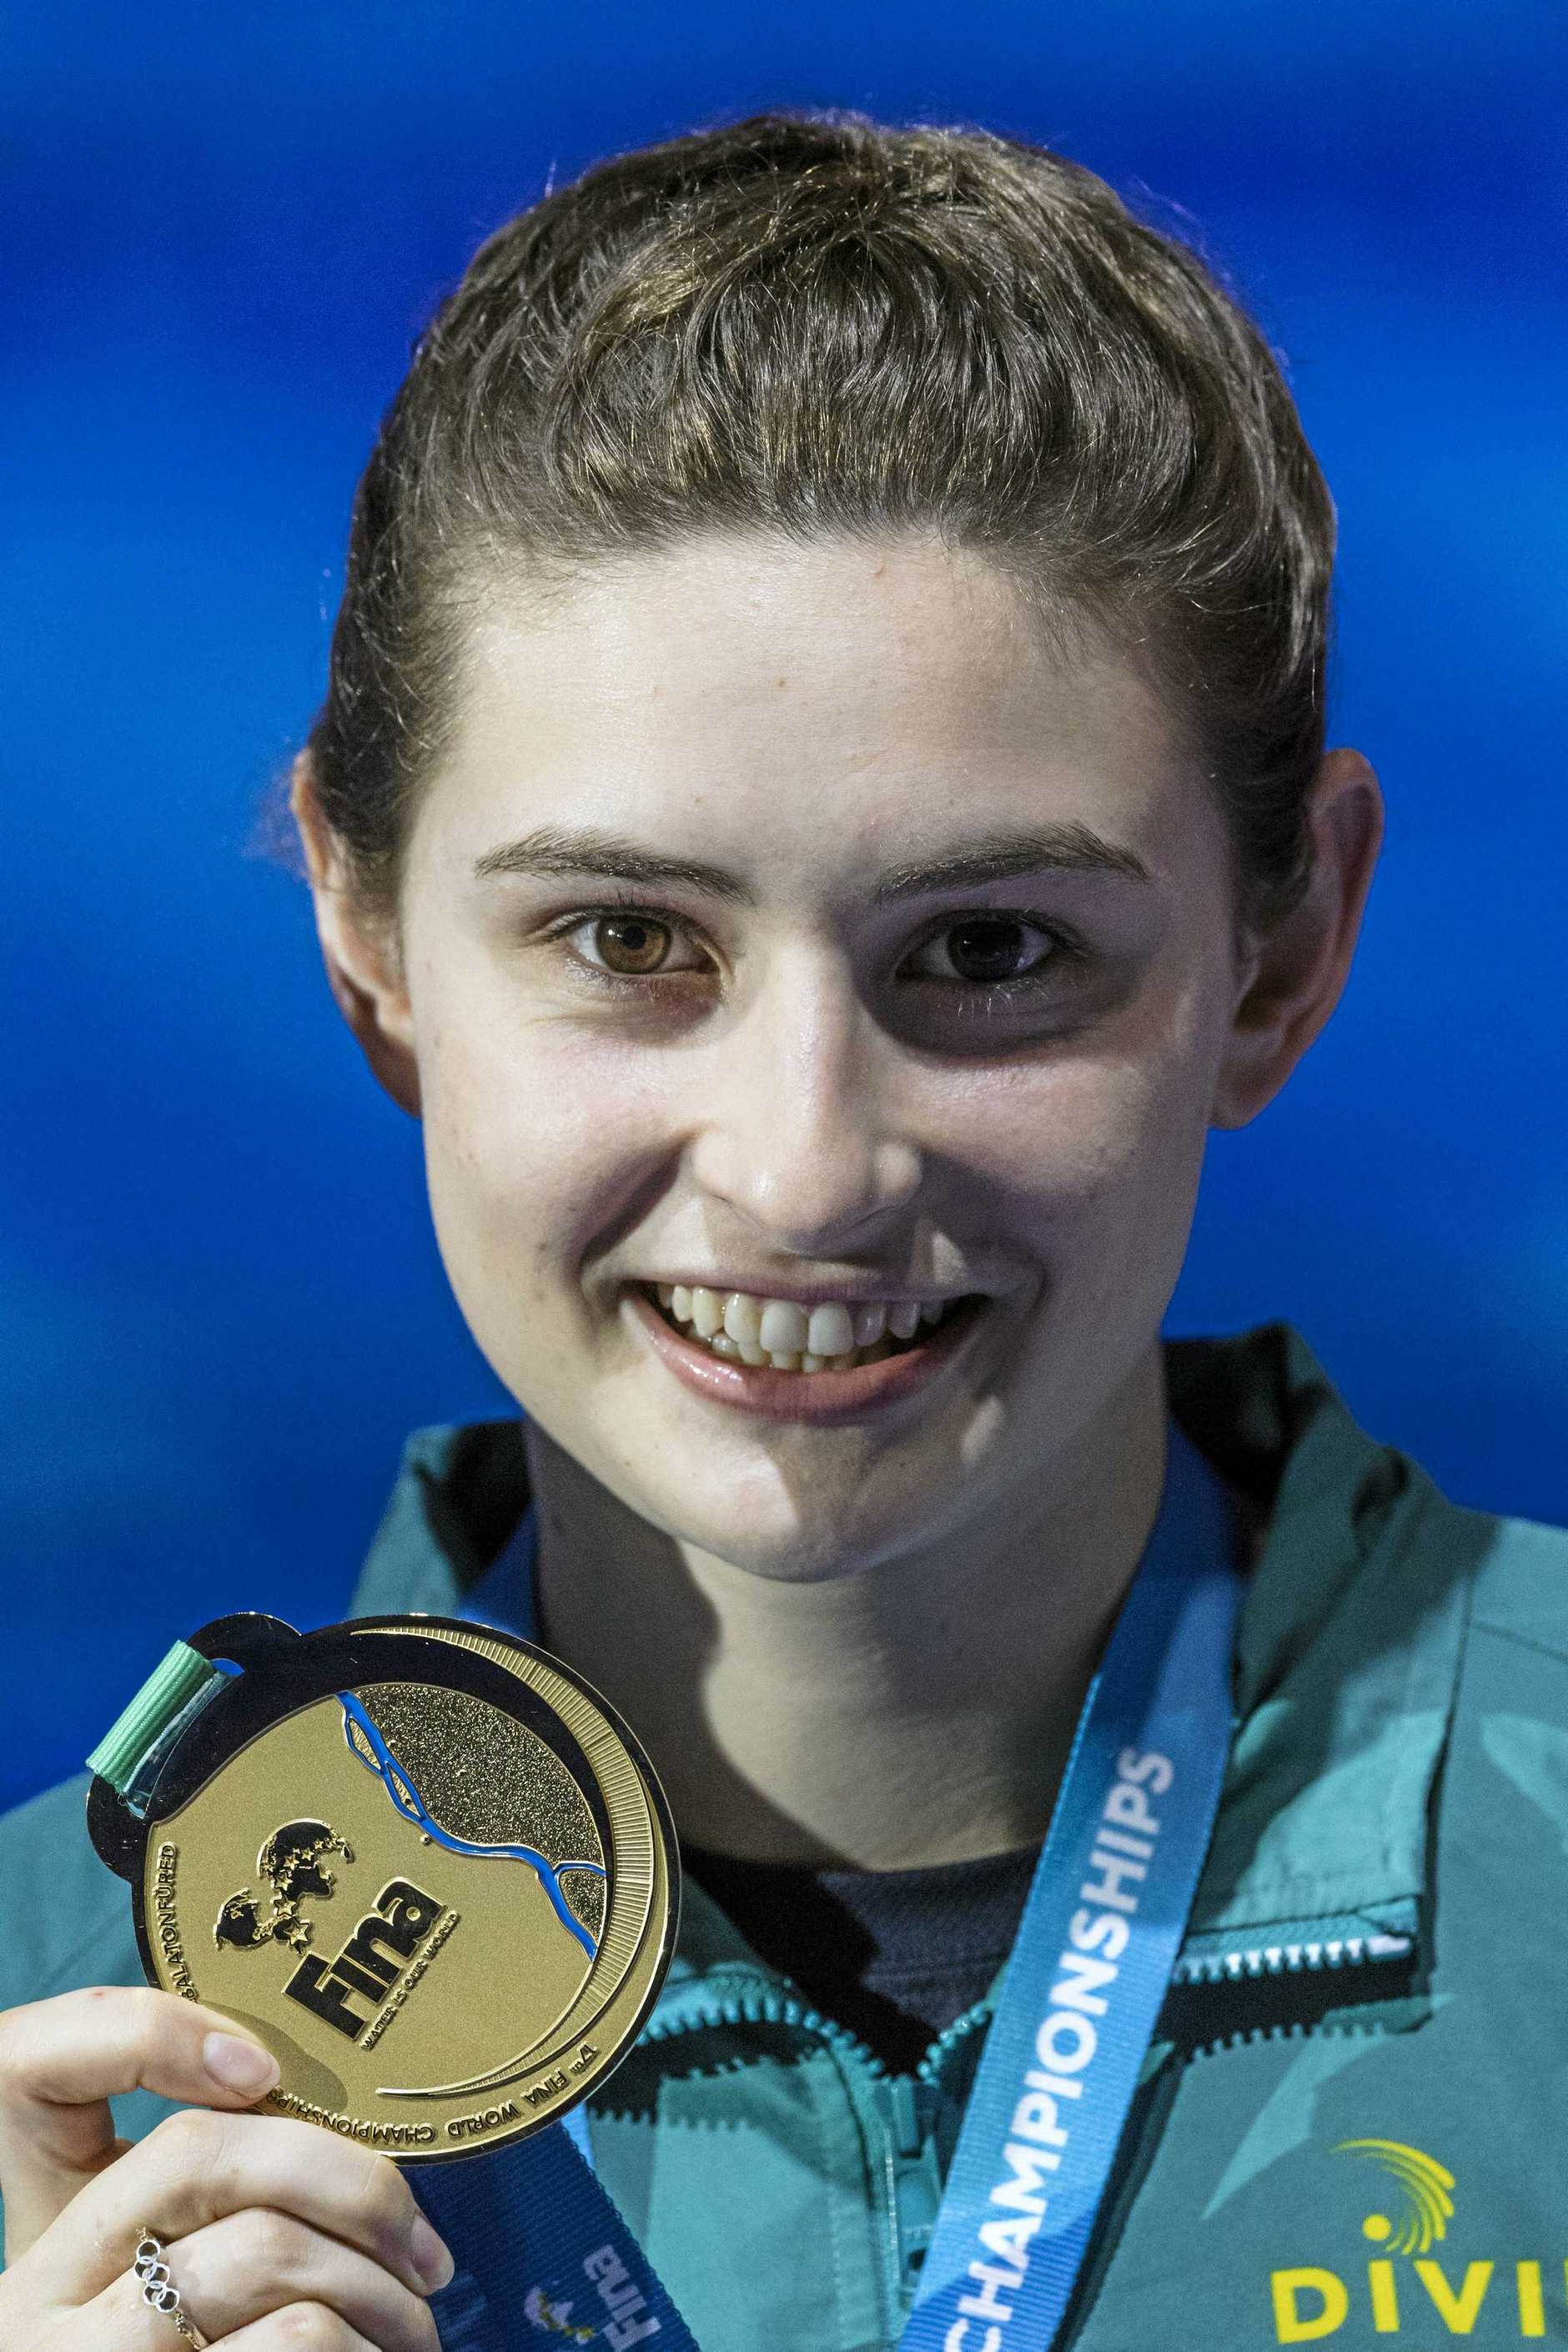 GOLDEN MOMENT: Australian Maddison Keeney was all smiles after winning the women's diving 1m springboard final at the Swimming World Championships.